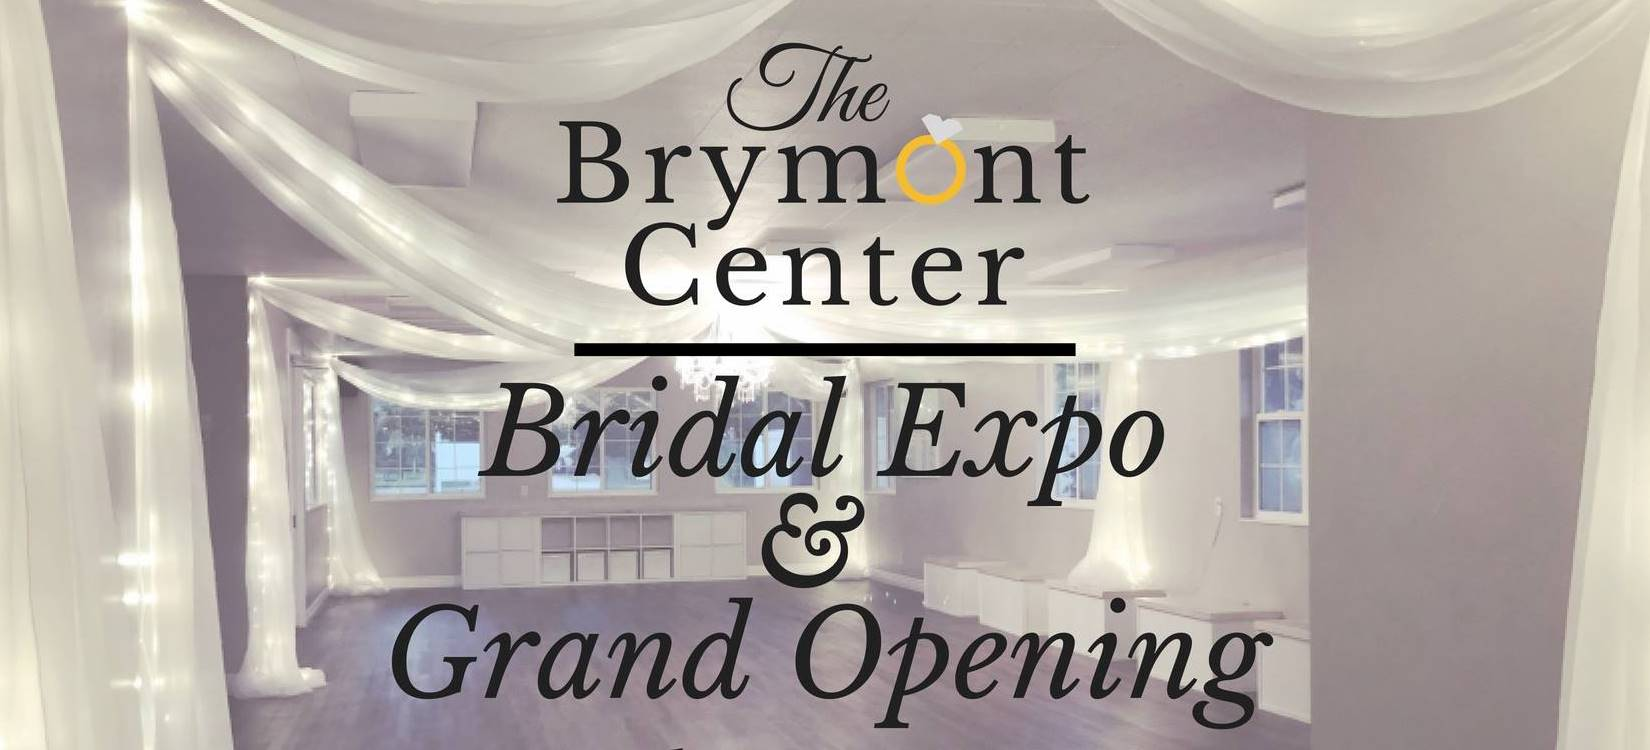 The-Brymont-Center-Bridal-Expo-and-Grand-Opening